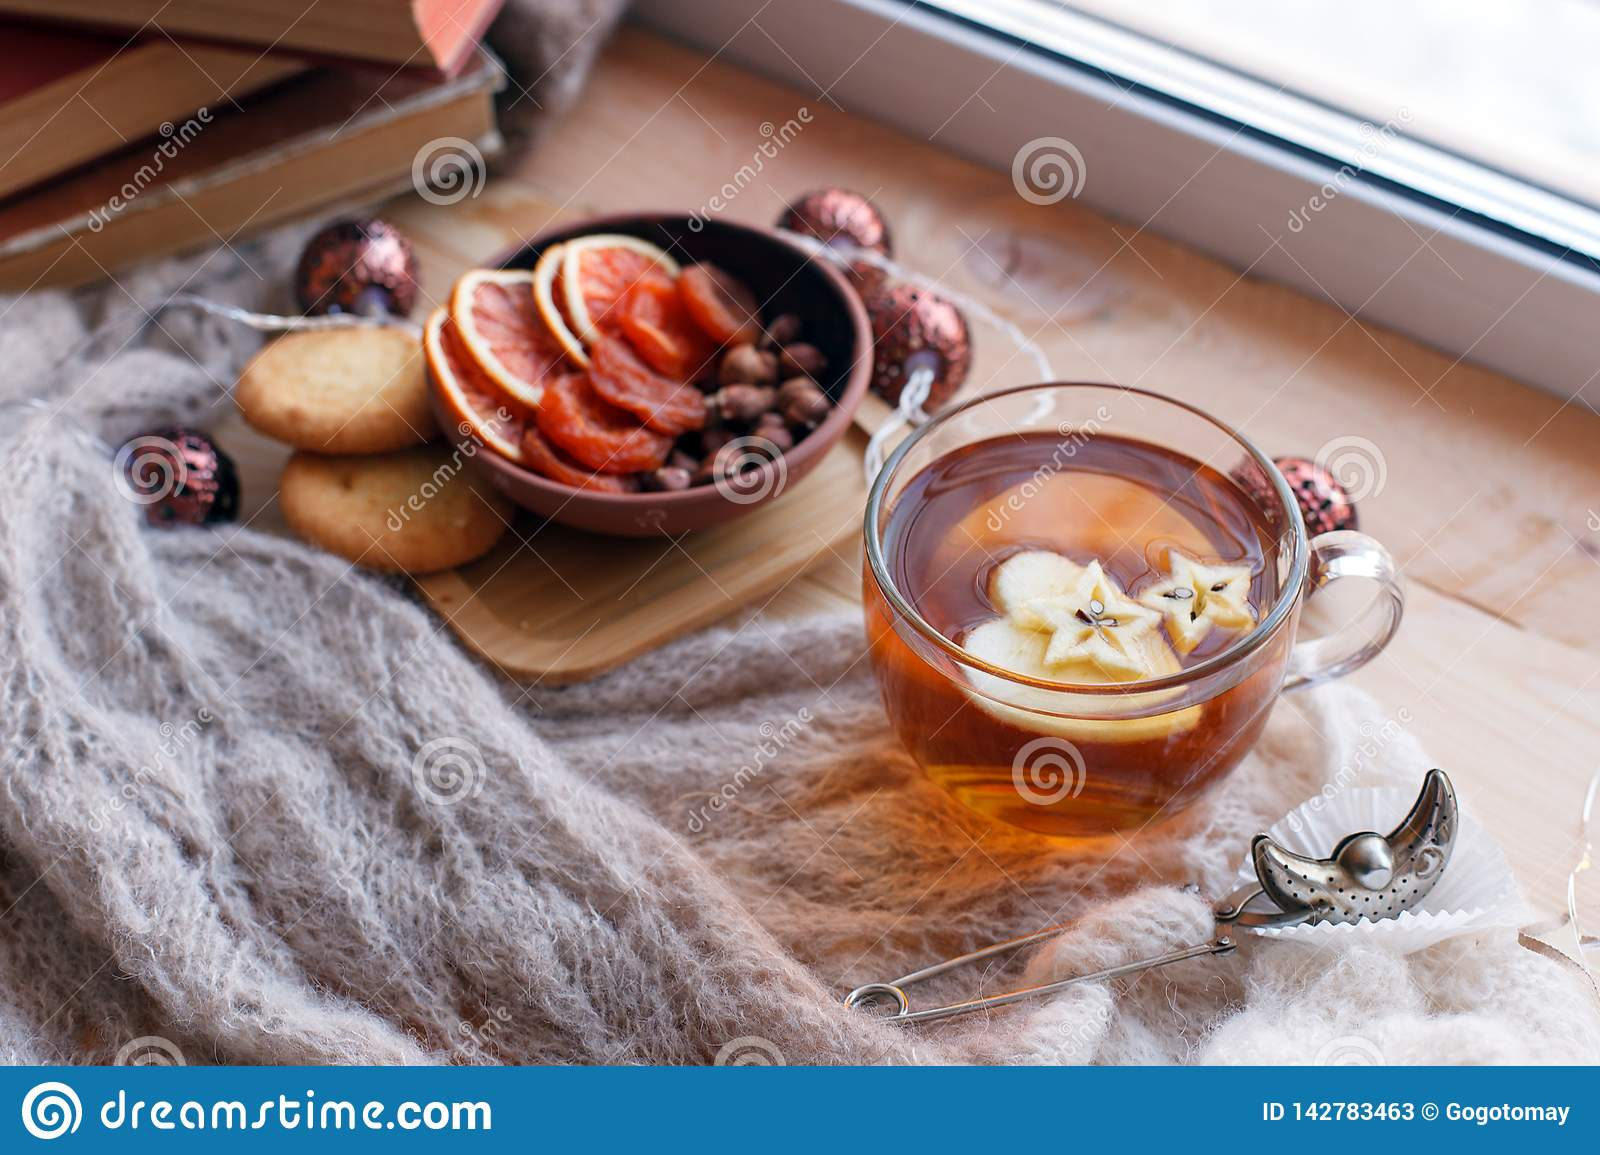 Cup of tea, snacks, book and warm blanket on windowsill, close up, relax unplug background, seasonal homely weekend, love to read